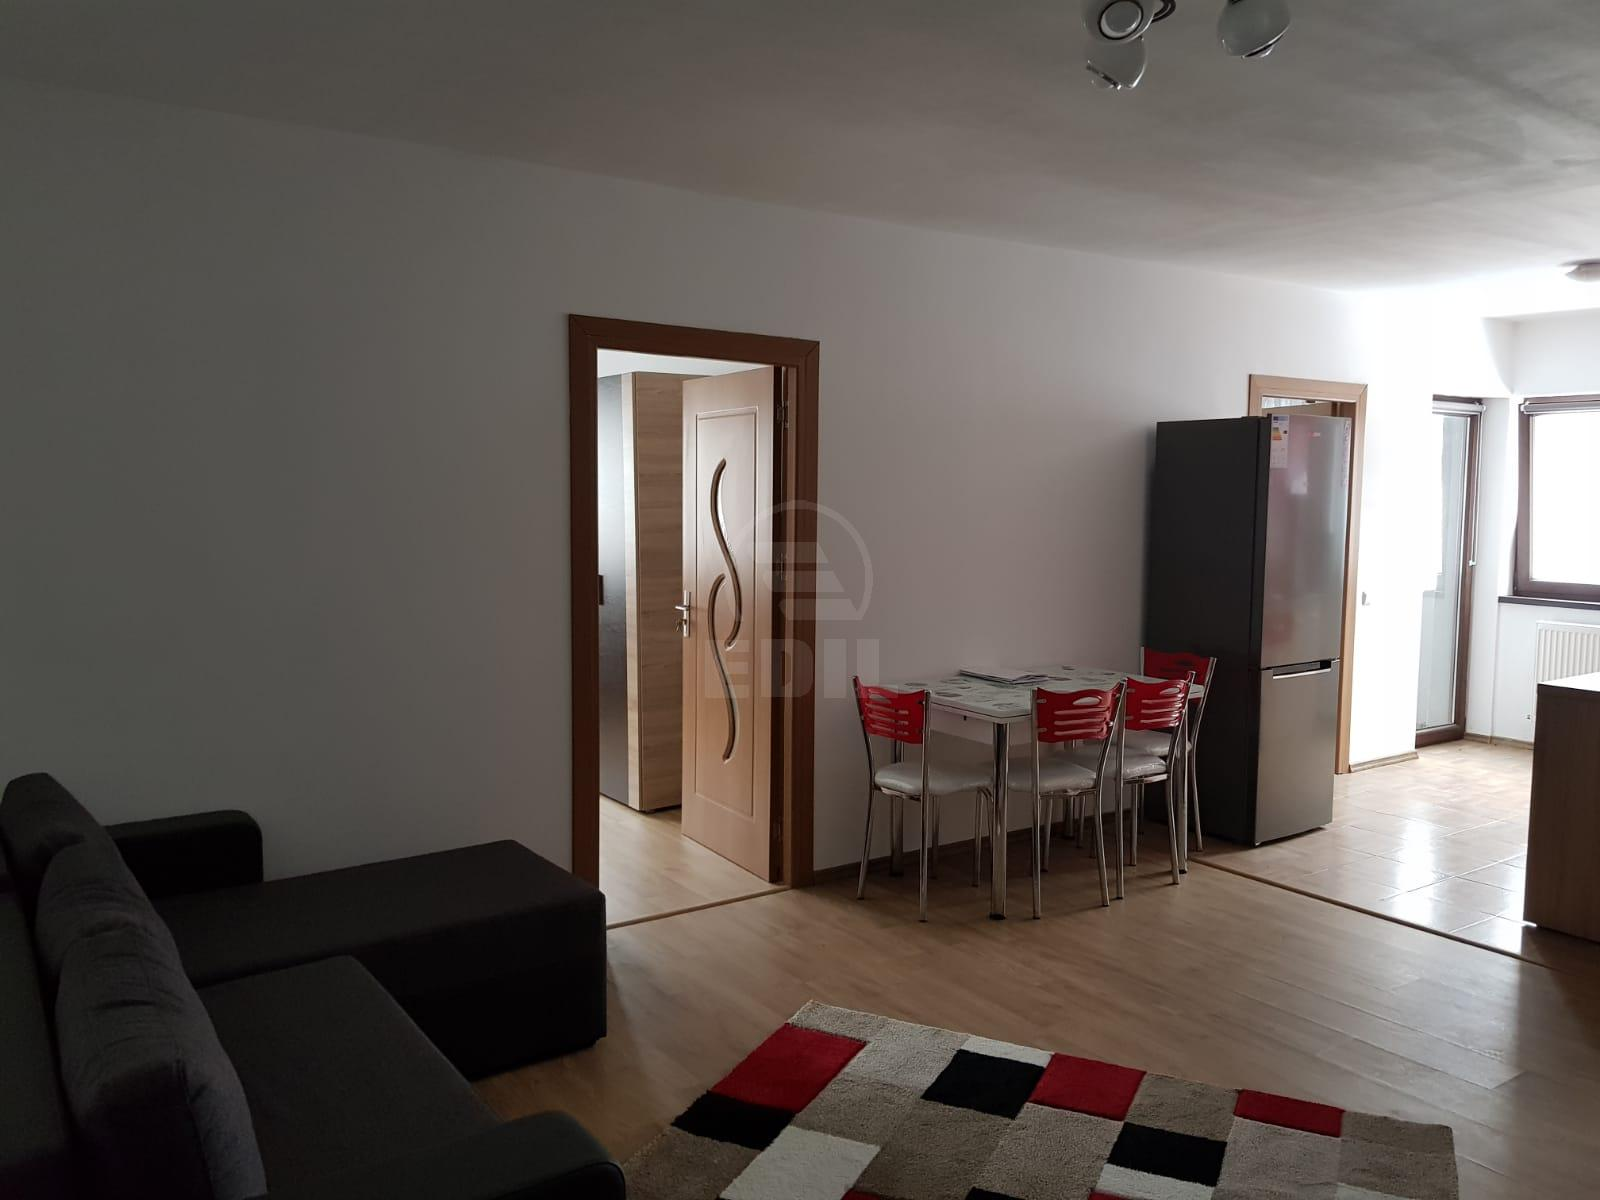 Apartment for rent 3 rooms, APCJ232650FLO-1